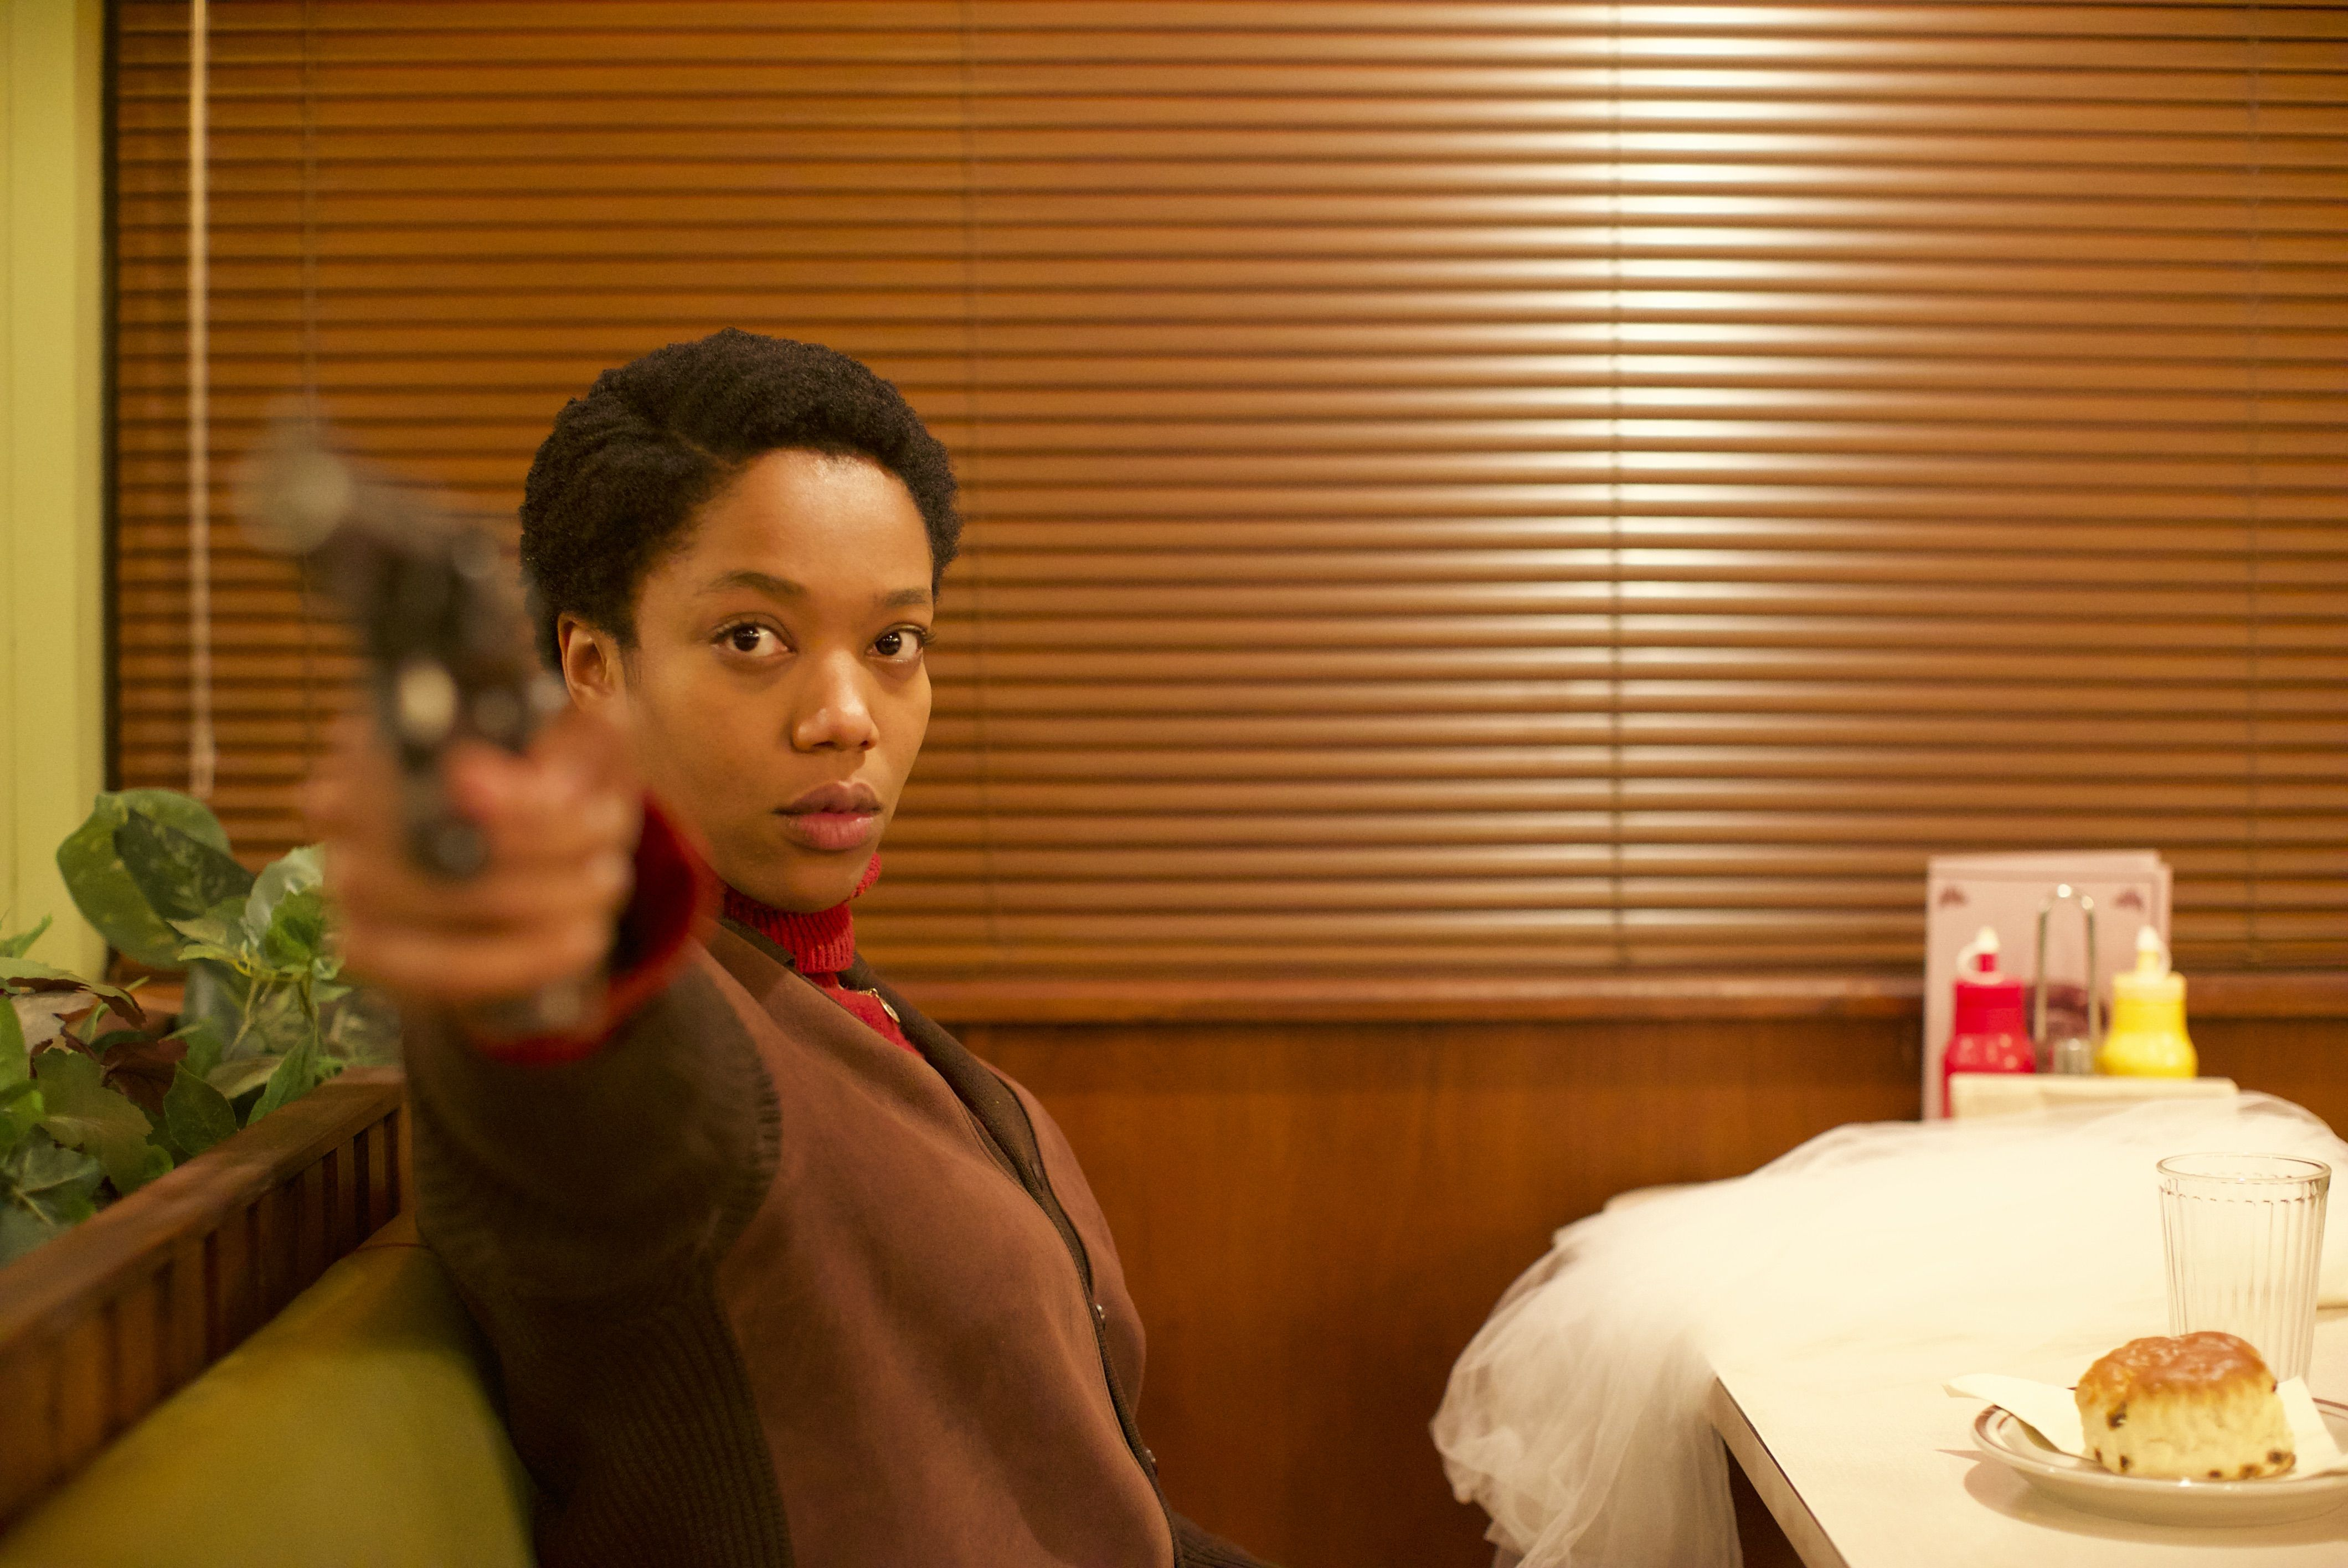 Naomi Ackie - Bonnie. The End of the F***ing World 2 in 2020   Charles forsman, She wants revenge, World